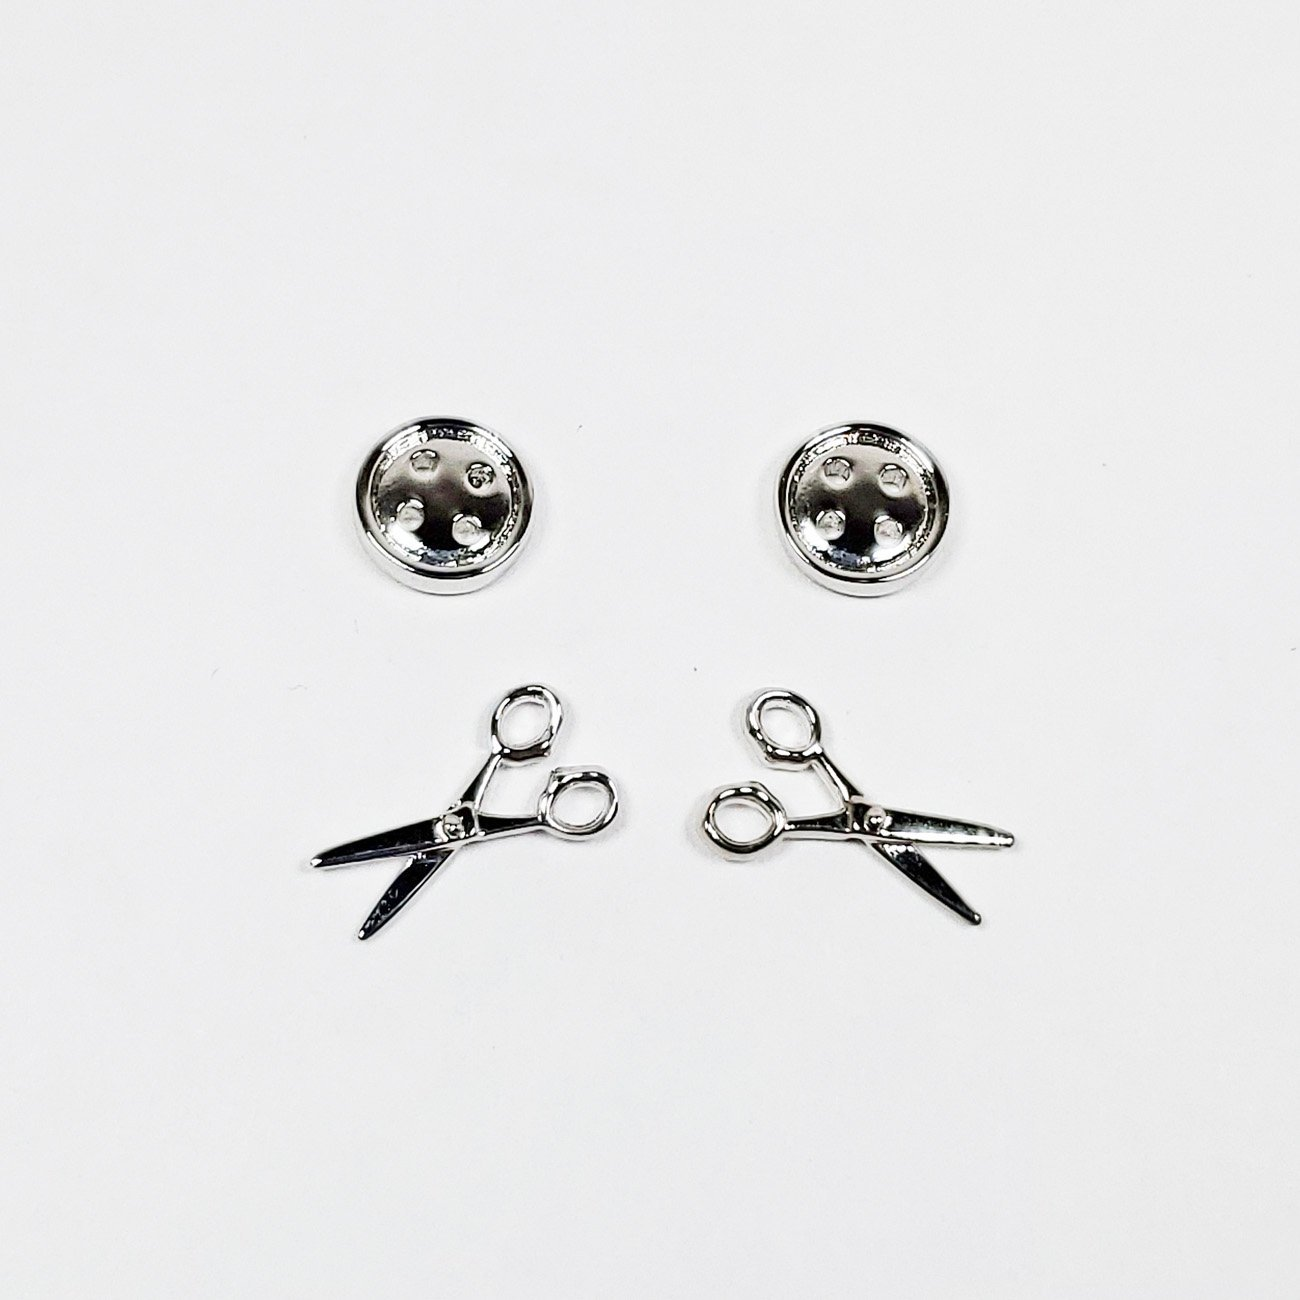 Button & Scissors Post Earrings Silver Set of 2 from the Quilt Spot